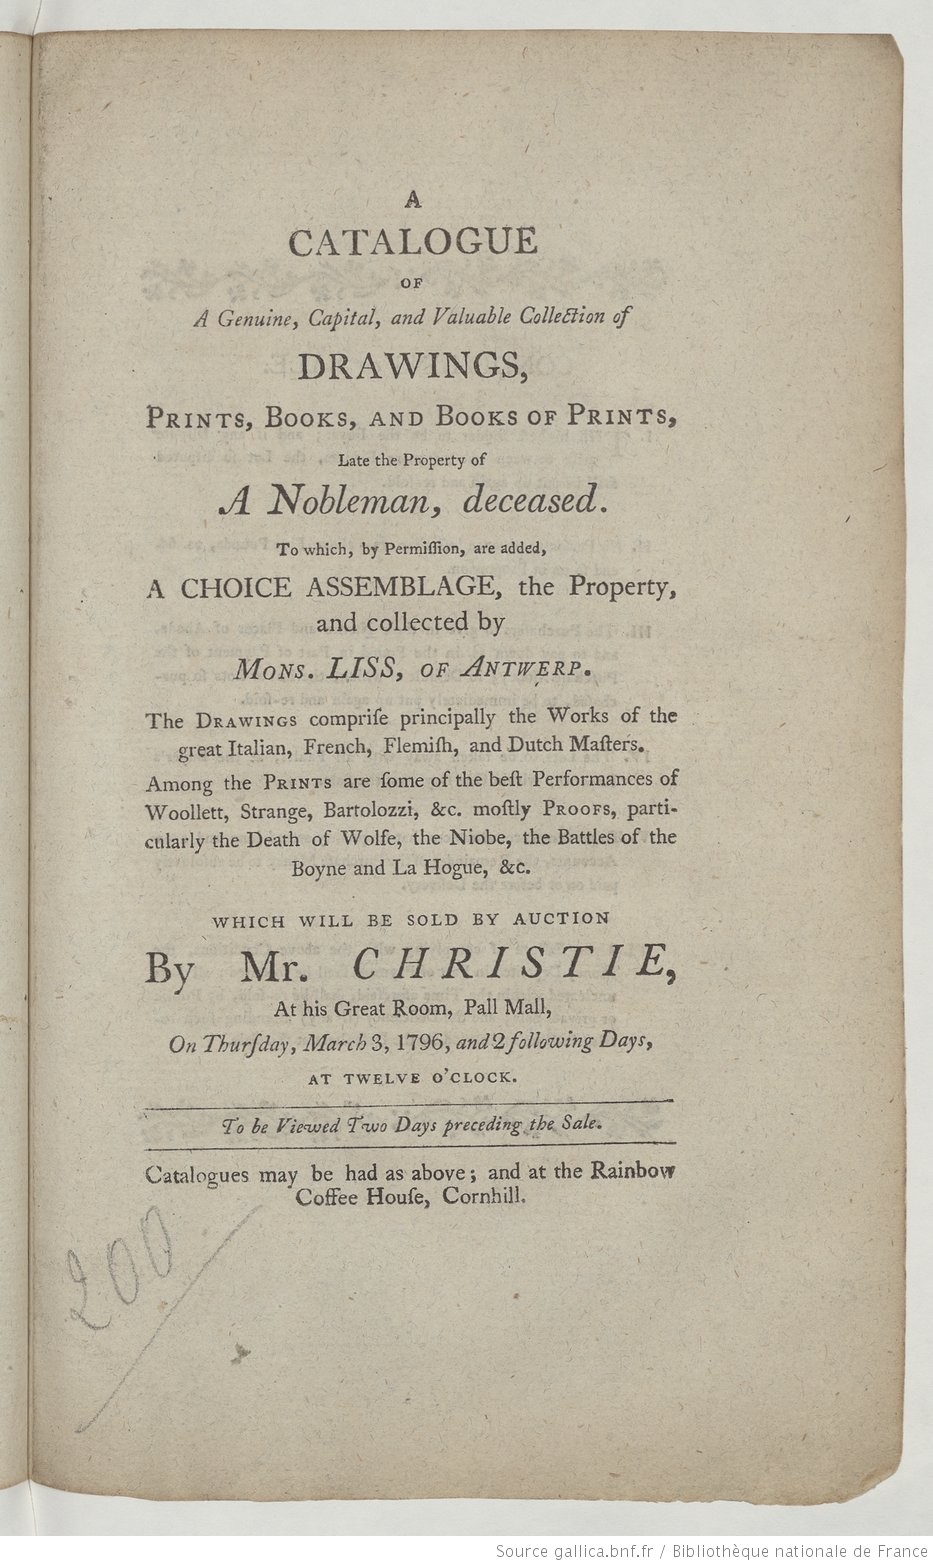 A catalogue of a genuine, capital, and valuable collection of